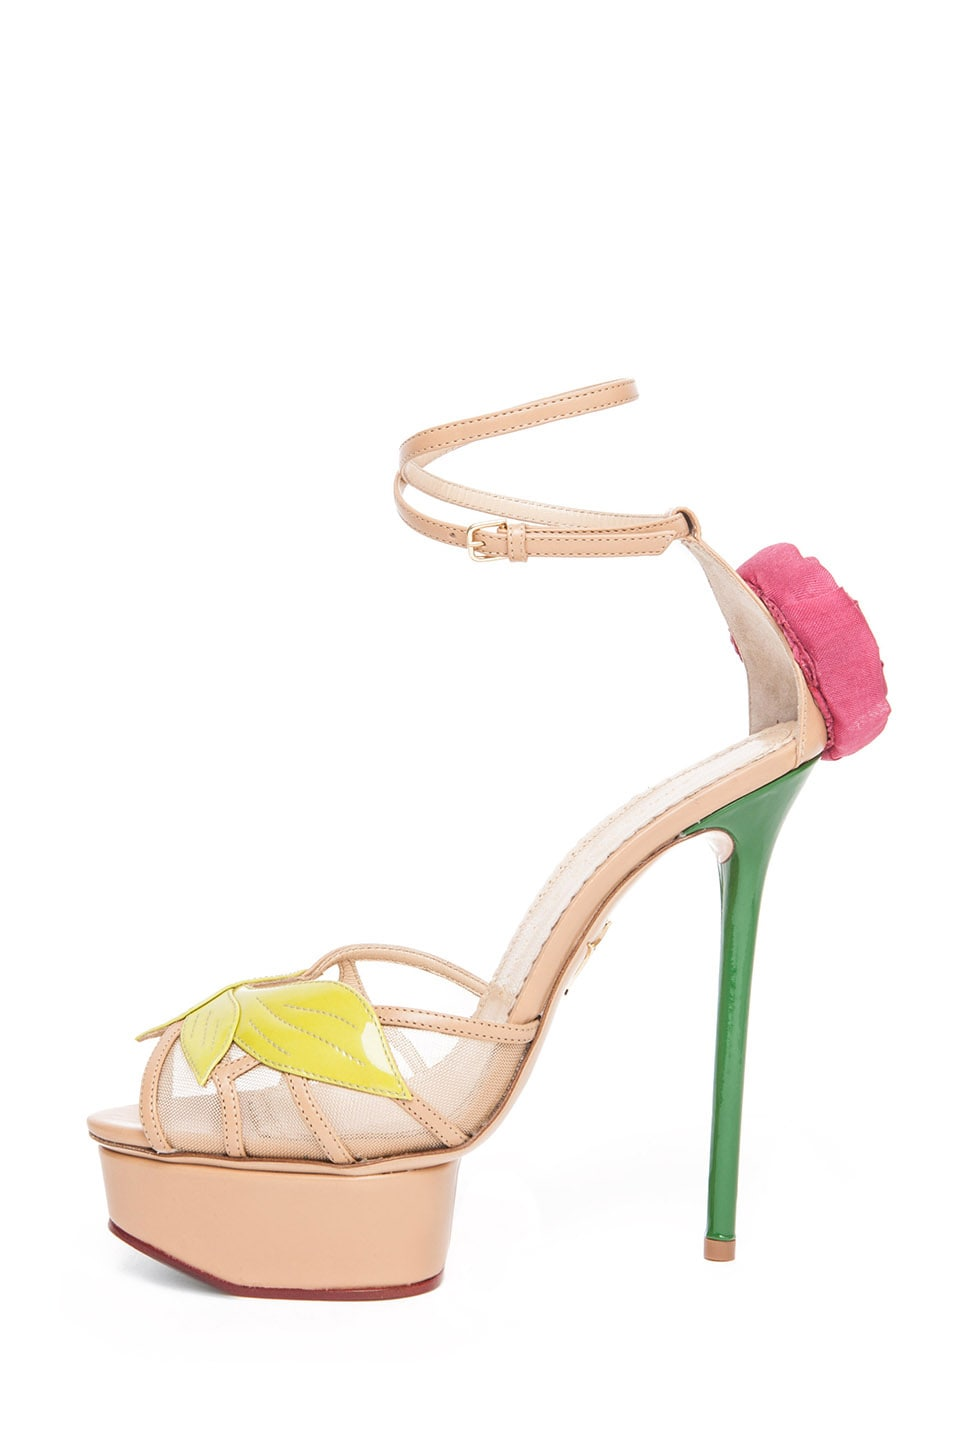 Image 1 of Charlotte Olympia Rose Leather Sandal with Rose and Leaf in Chartreuse & Nude